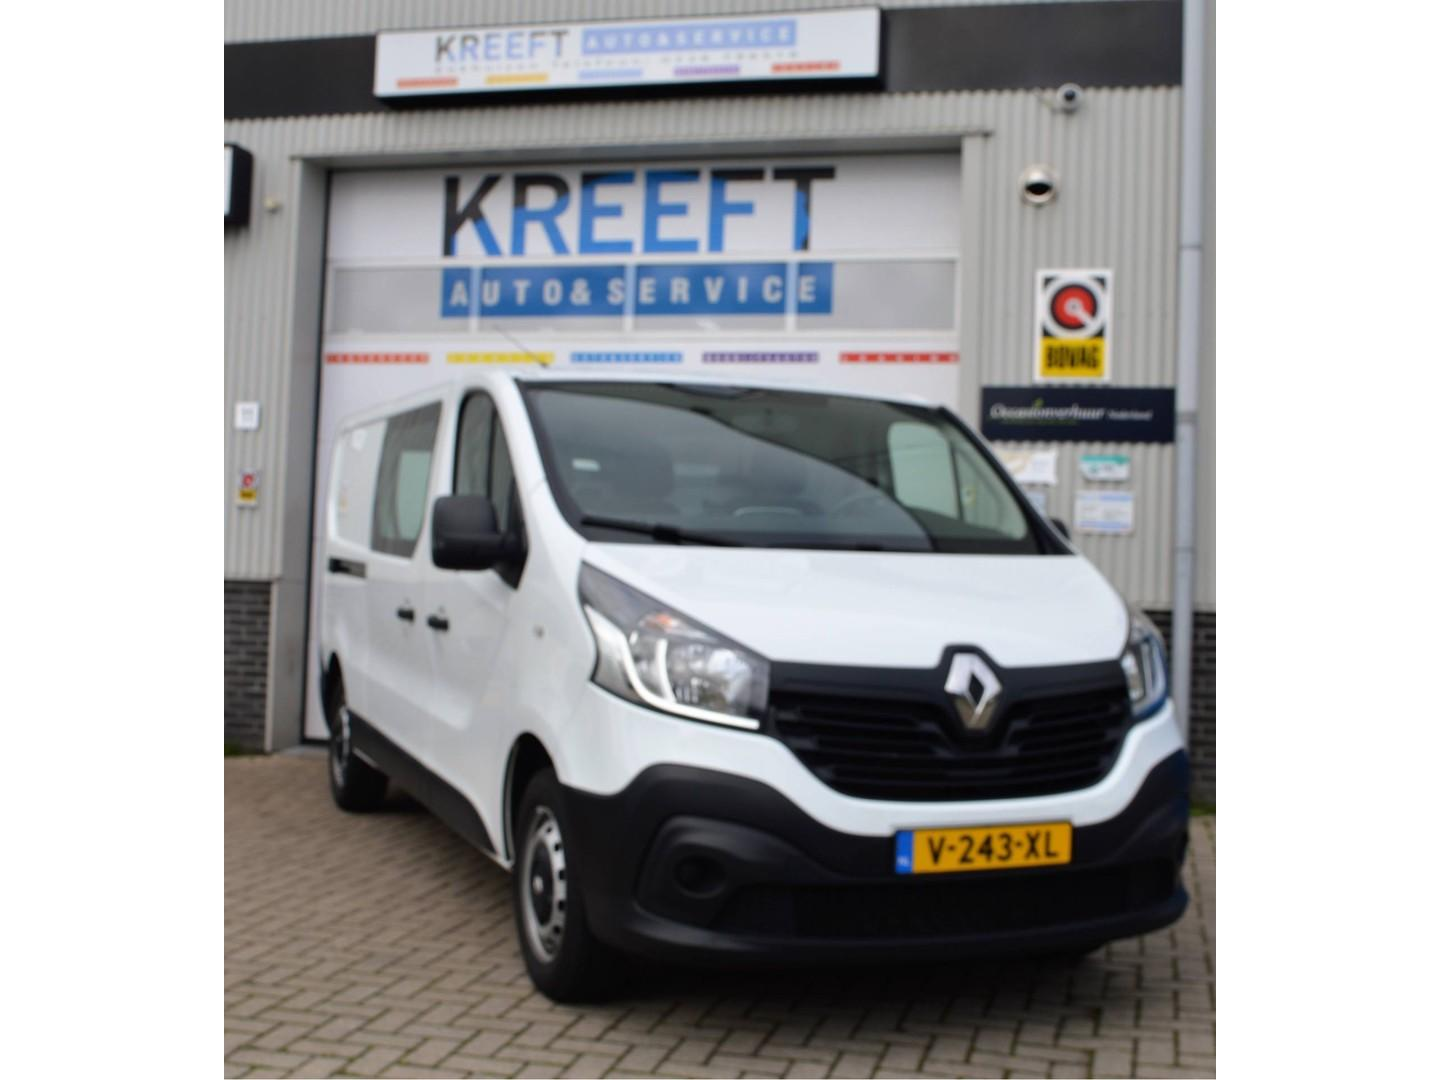 Renault Trafic 1.6 dci t29 l2h1 comfort airco, touchscreen, navi